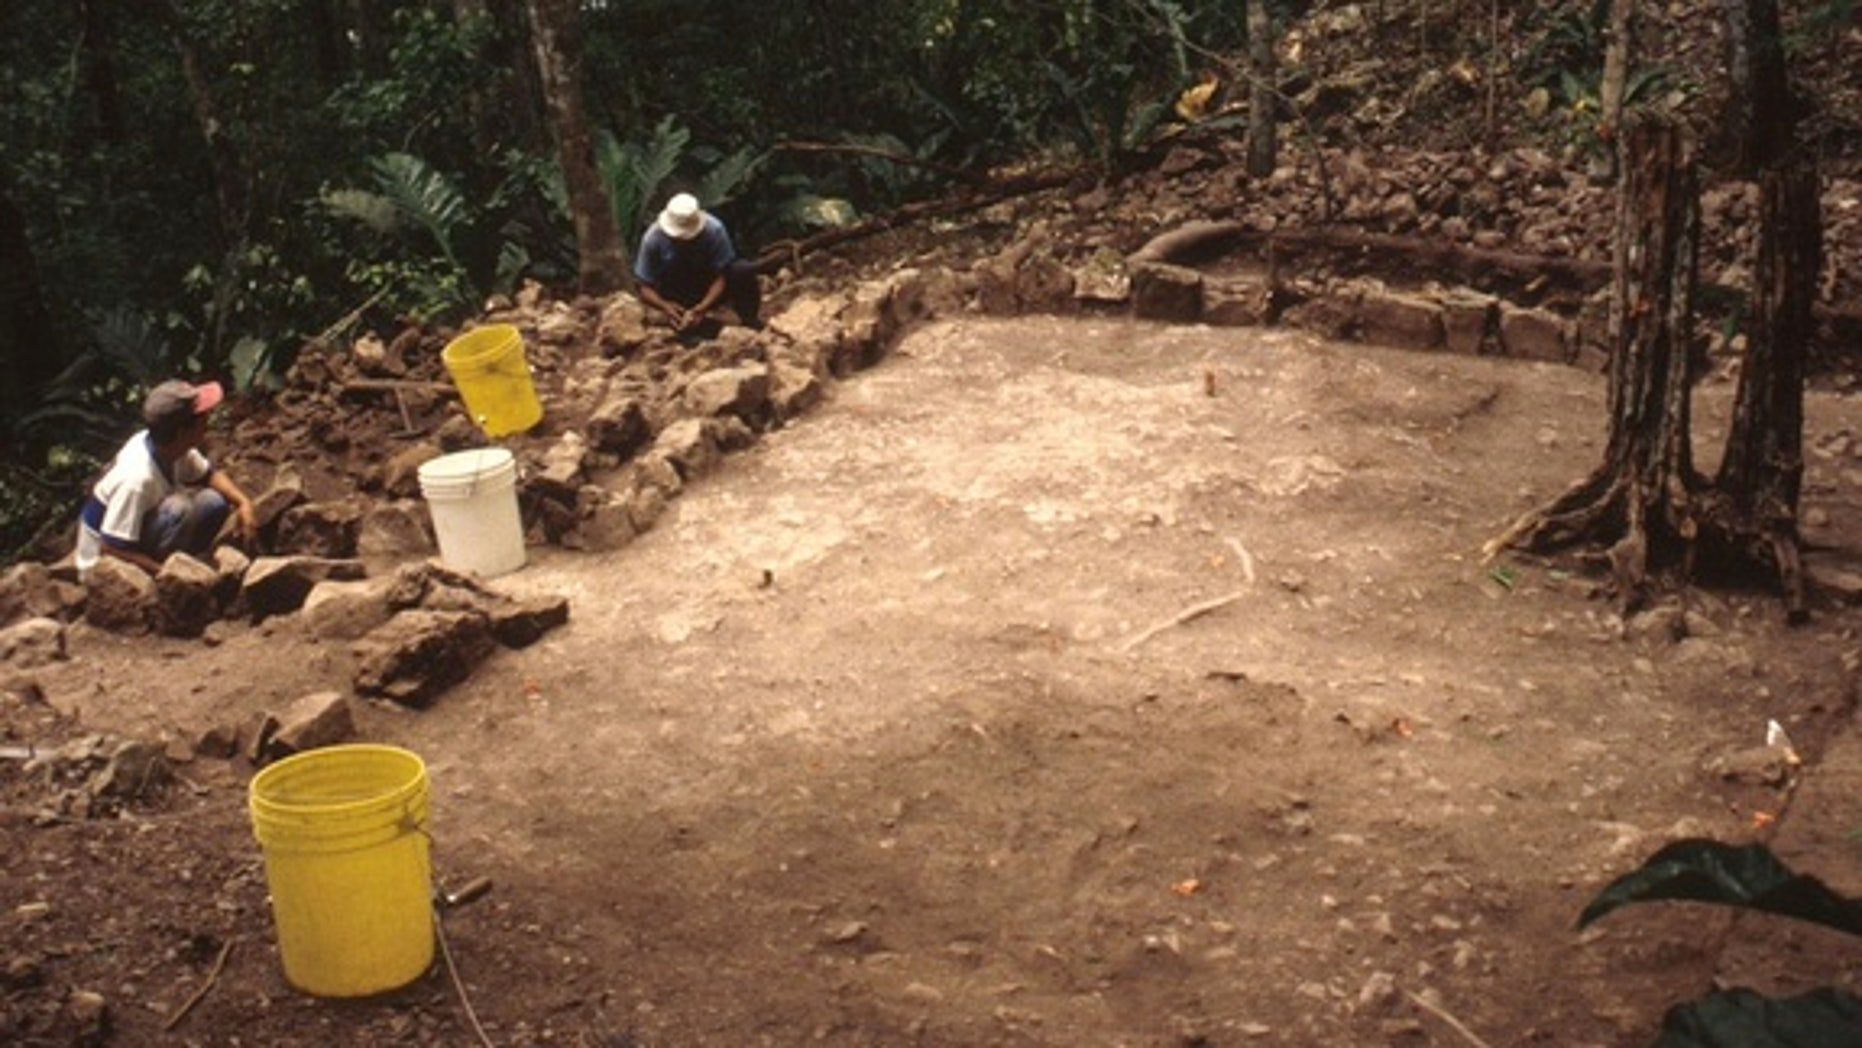 "Around 500 years ago, in this Maya temple at Zacpetén in Guatemala, a person was cut open using an obsidian arrowhead, and their blood was spilled in a ceremony that may have used a person's ""life force"" to feed the gods."